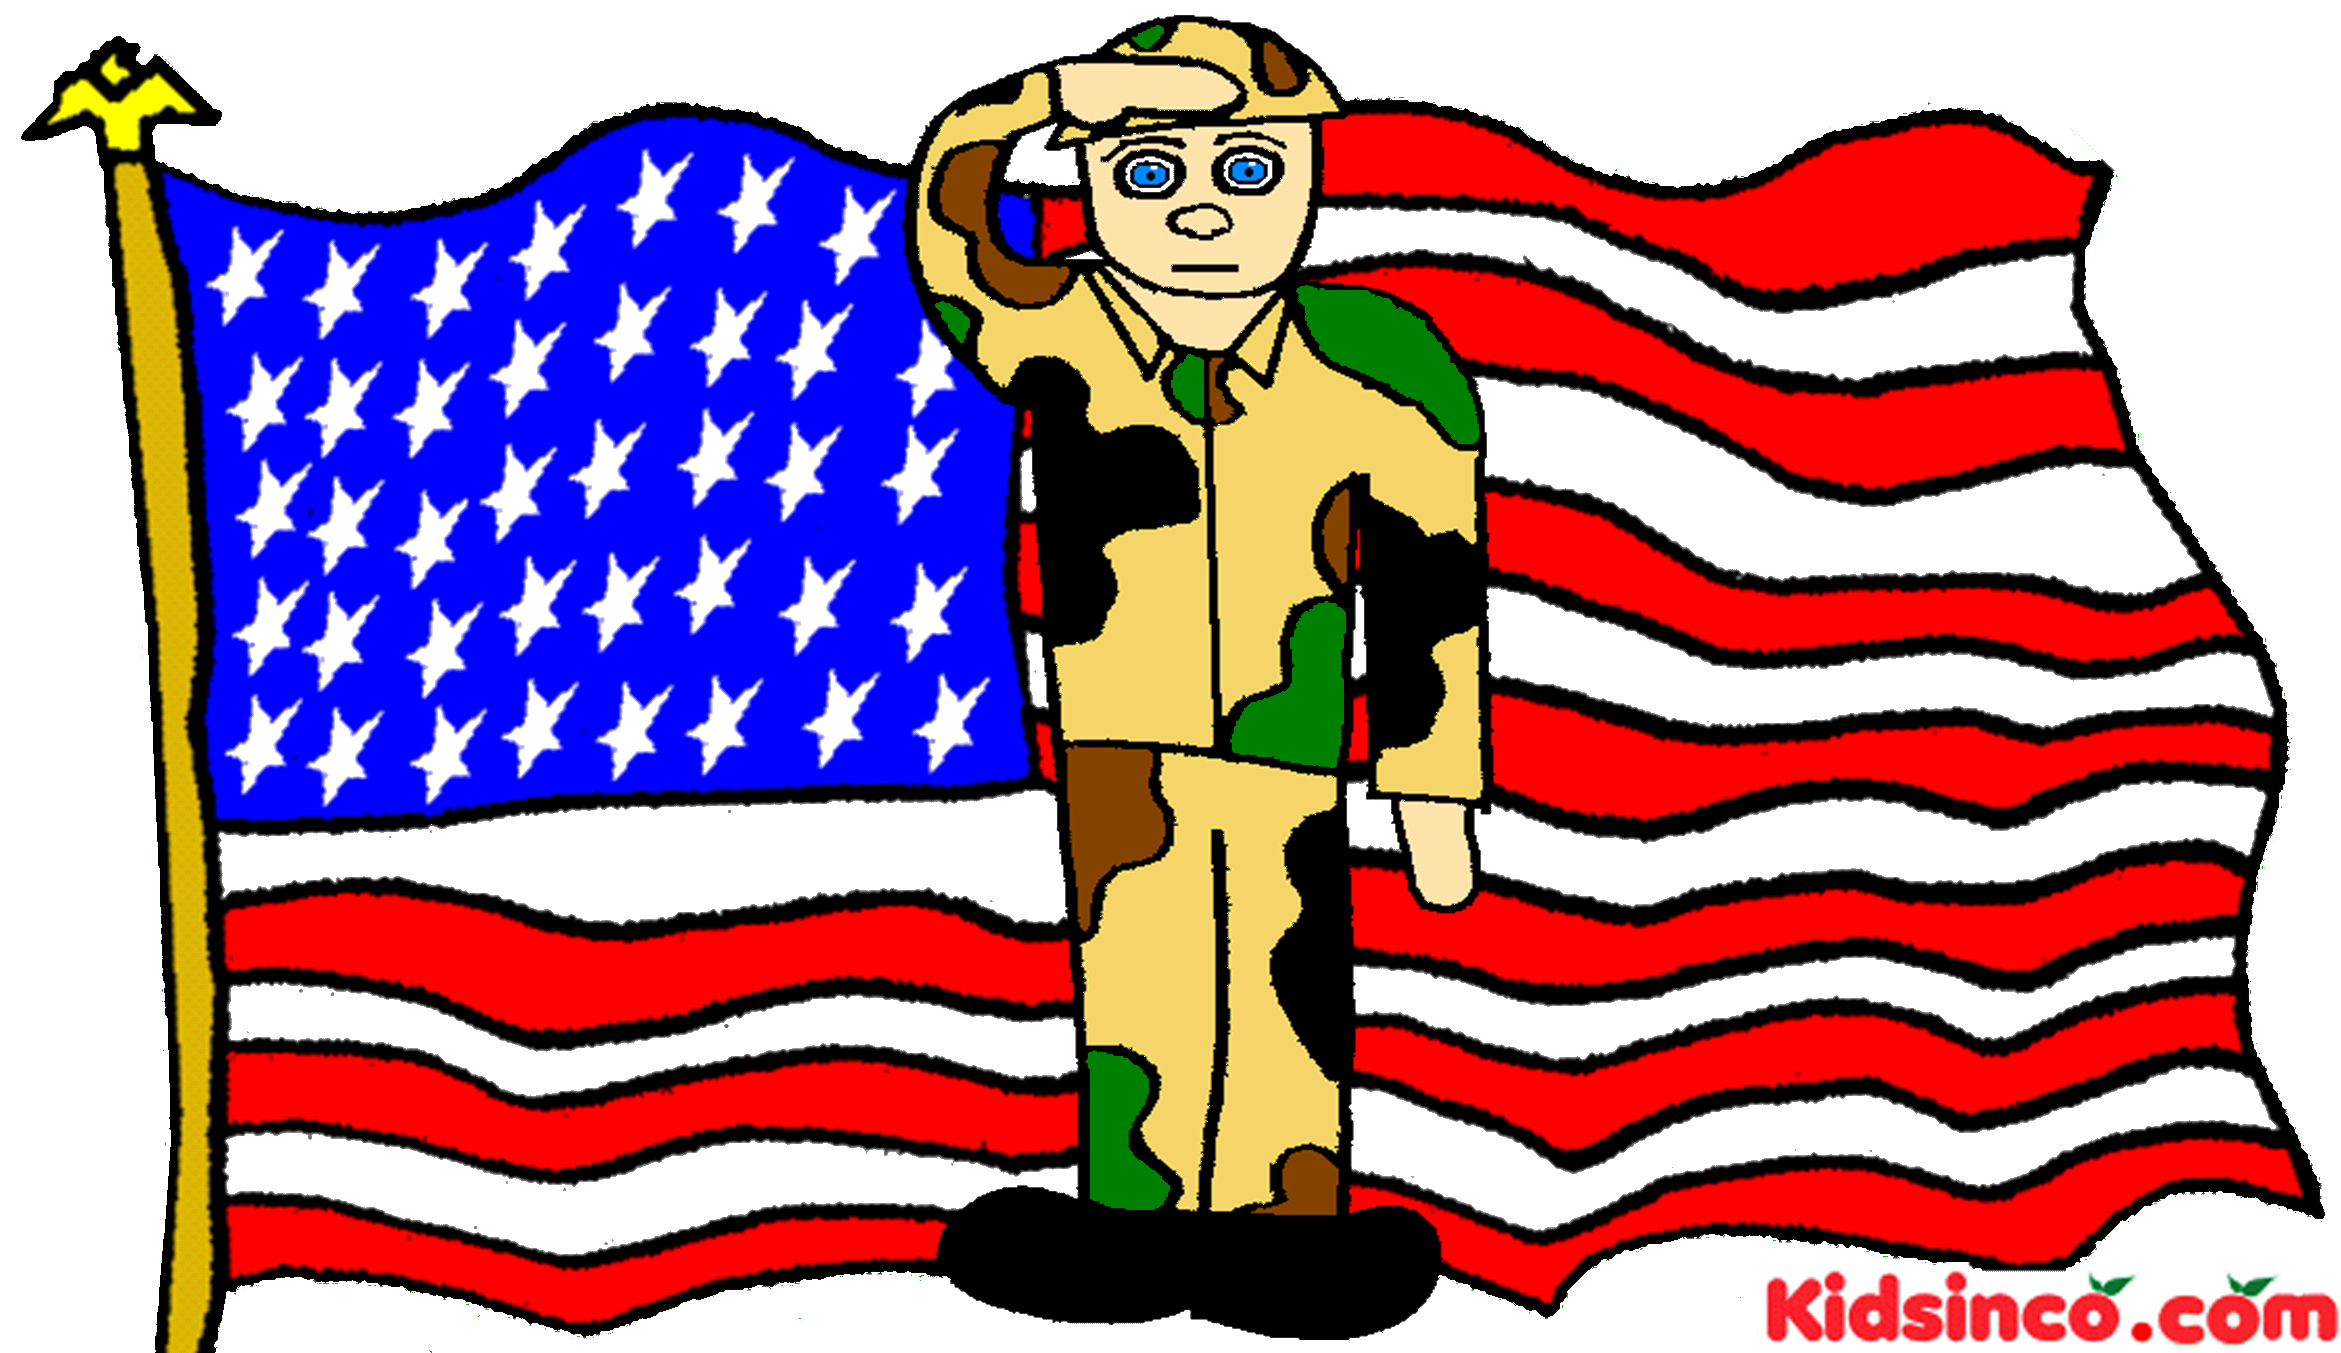 Veterans day clipart clipart graphic black and white library Veterans Day Clip Art Free Downloads | Clipart Panda - Free ... graphic black and white library